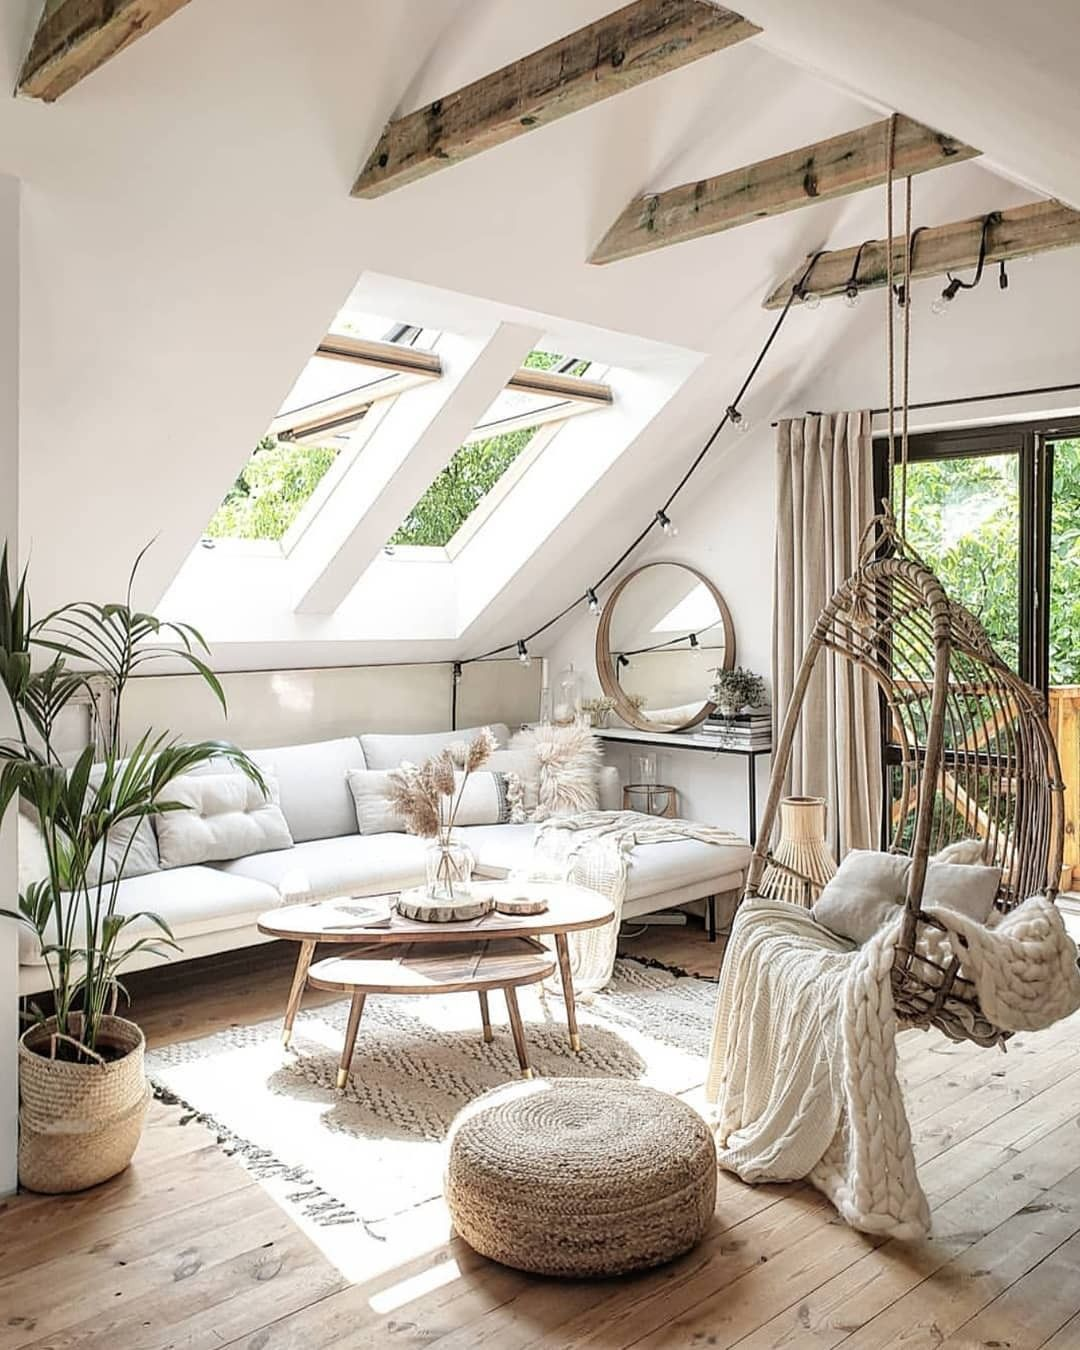 Boho Chic Home Decor Plans And Ideas Boligindretning Stue Ideer Vaerelse Dekoration